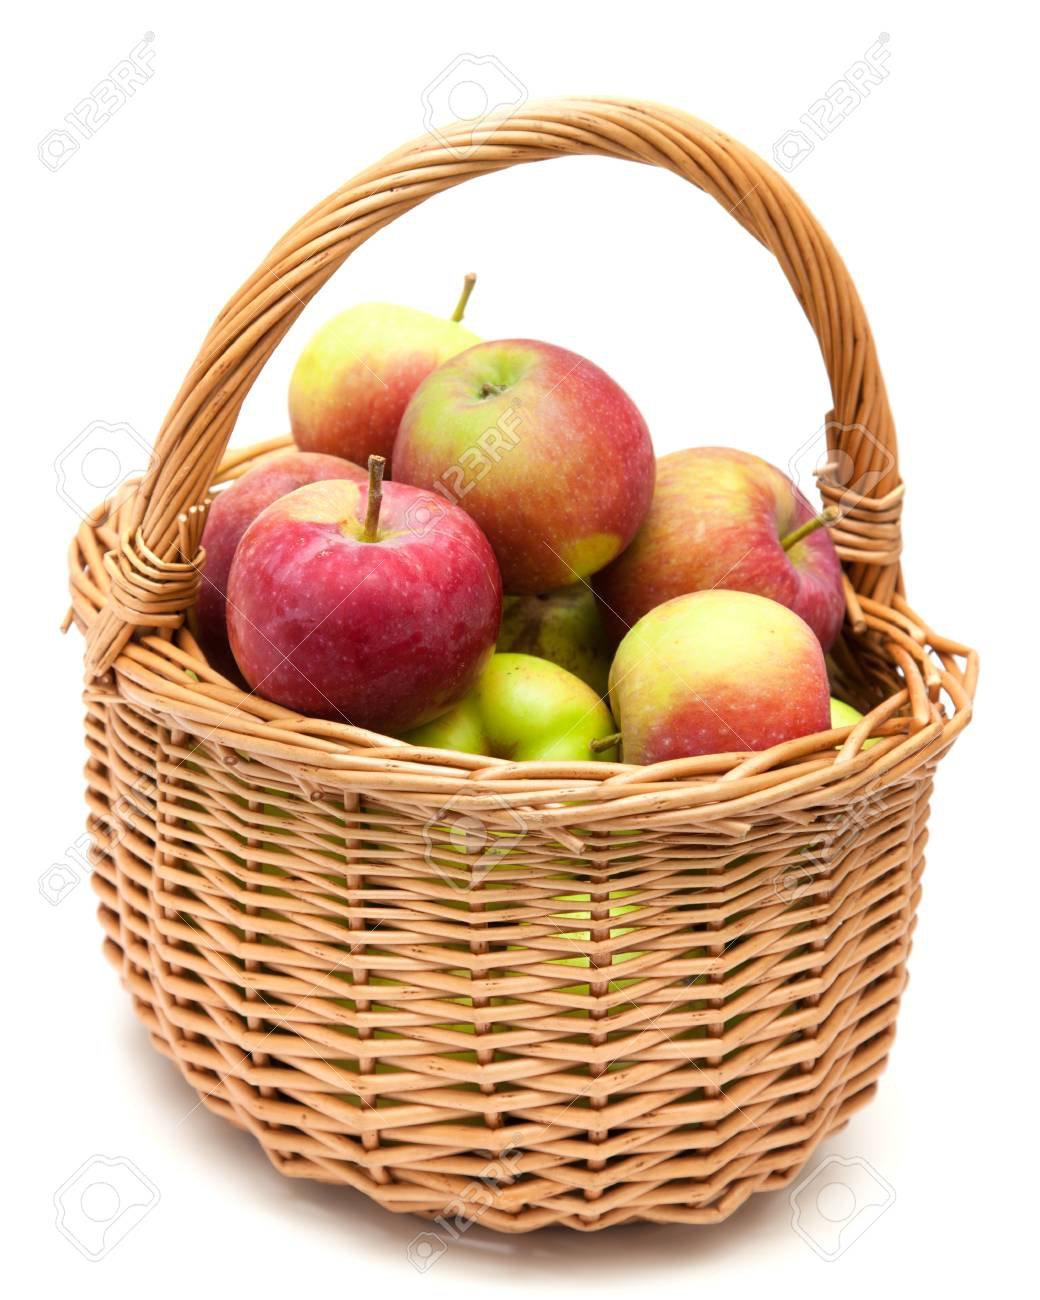 Wicker Basket Full Of Apples Isolated On White Stock Photo, Picture And Royalty Free Image. Image 21759245.